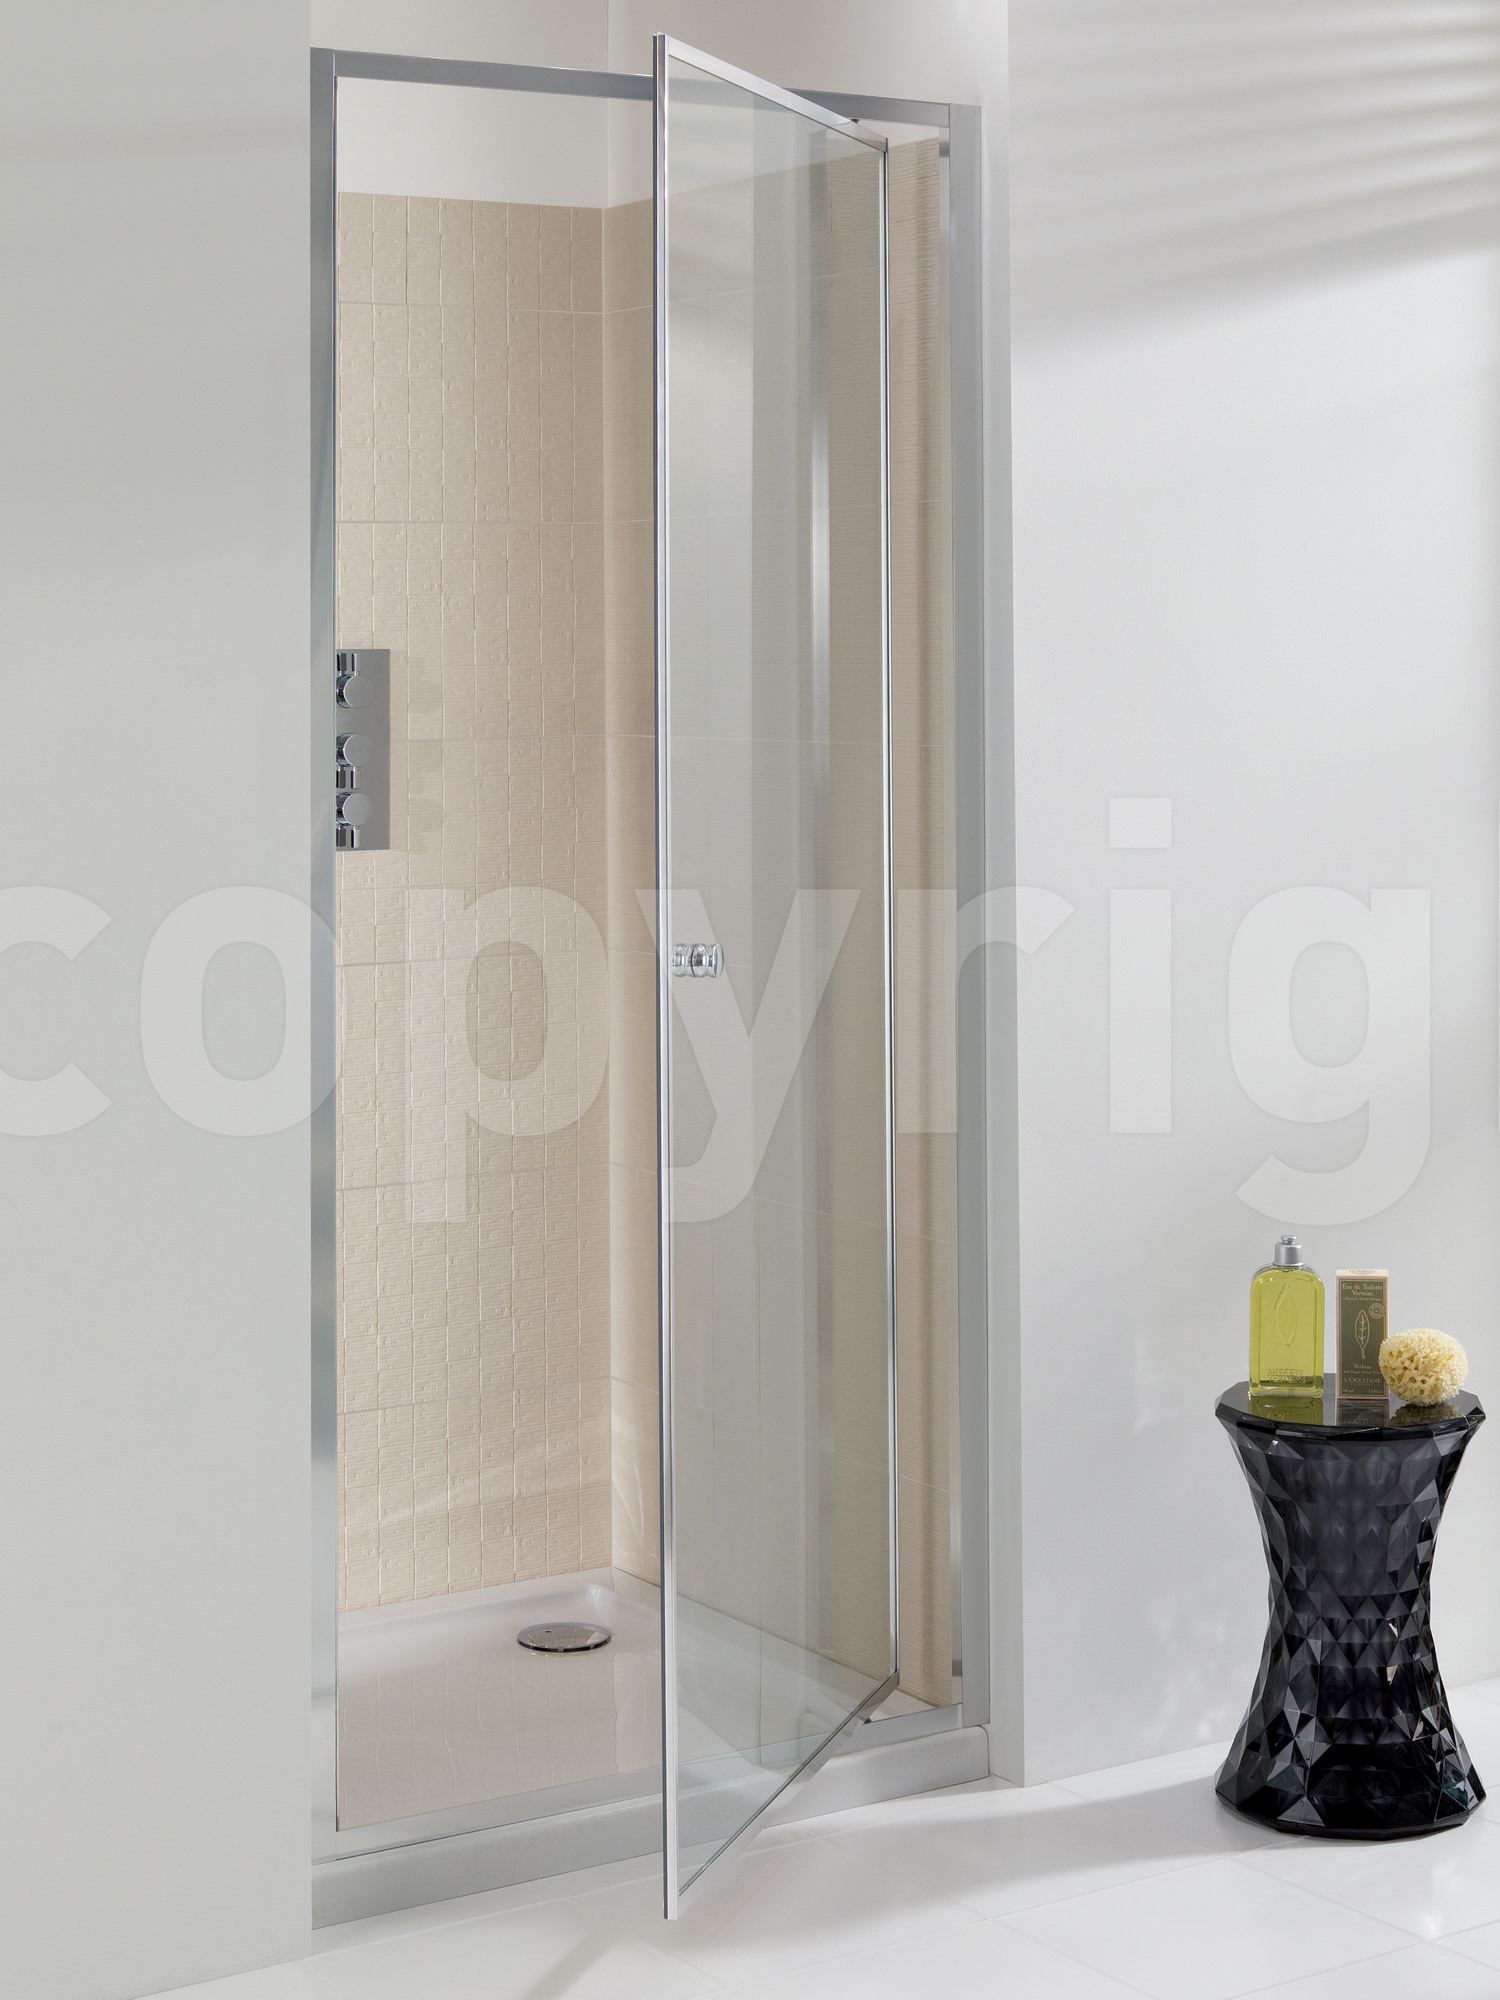 Glass Shower Door Pivot 1500 x 2000 · 1328 kB · jpeg